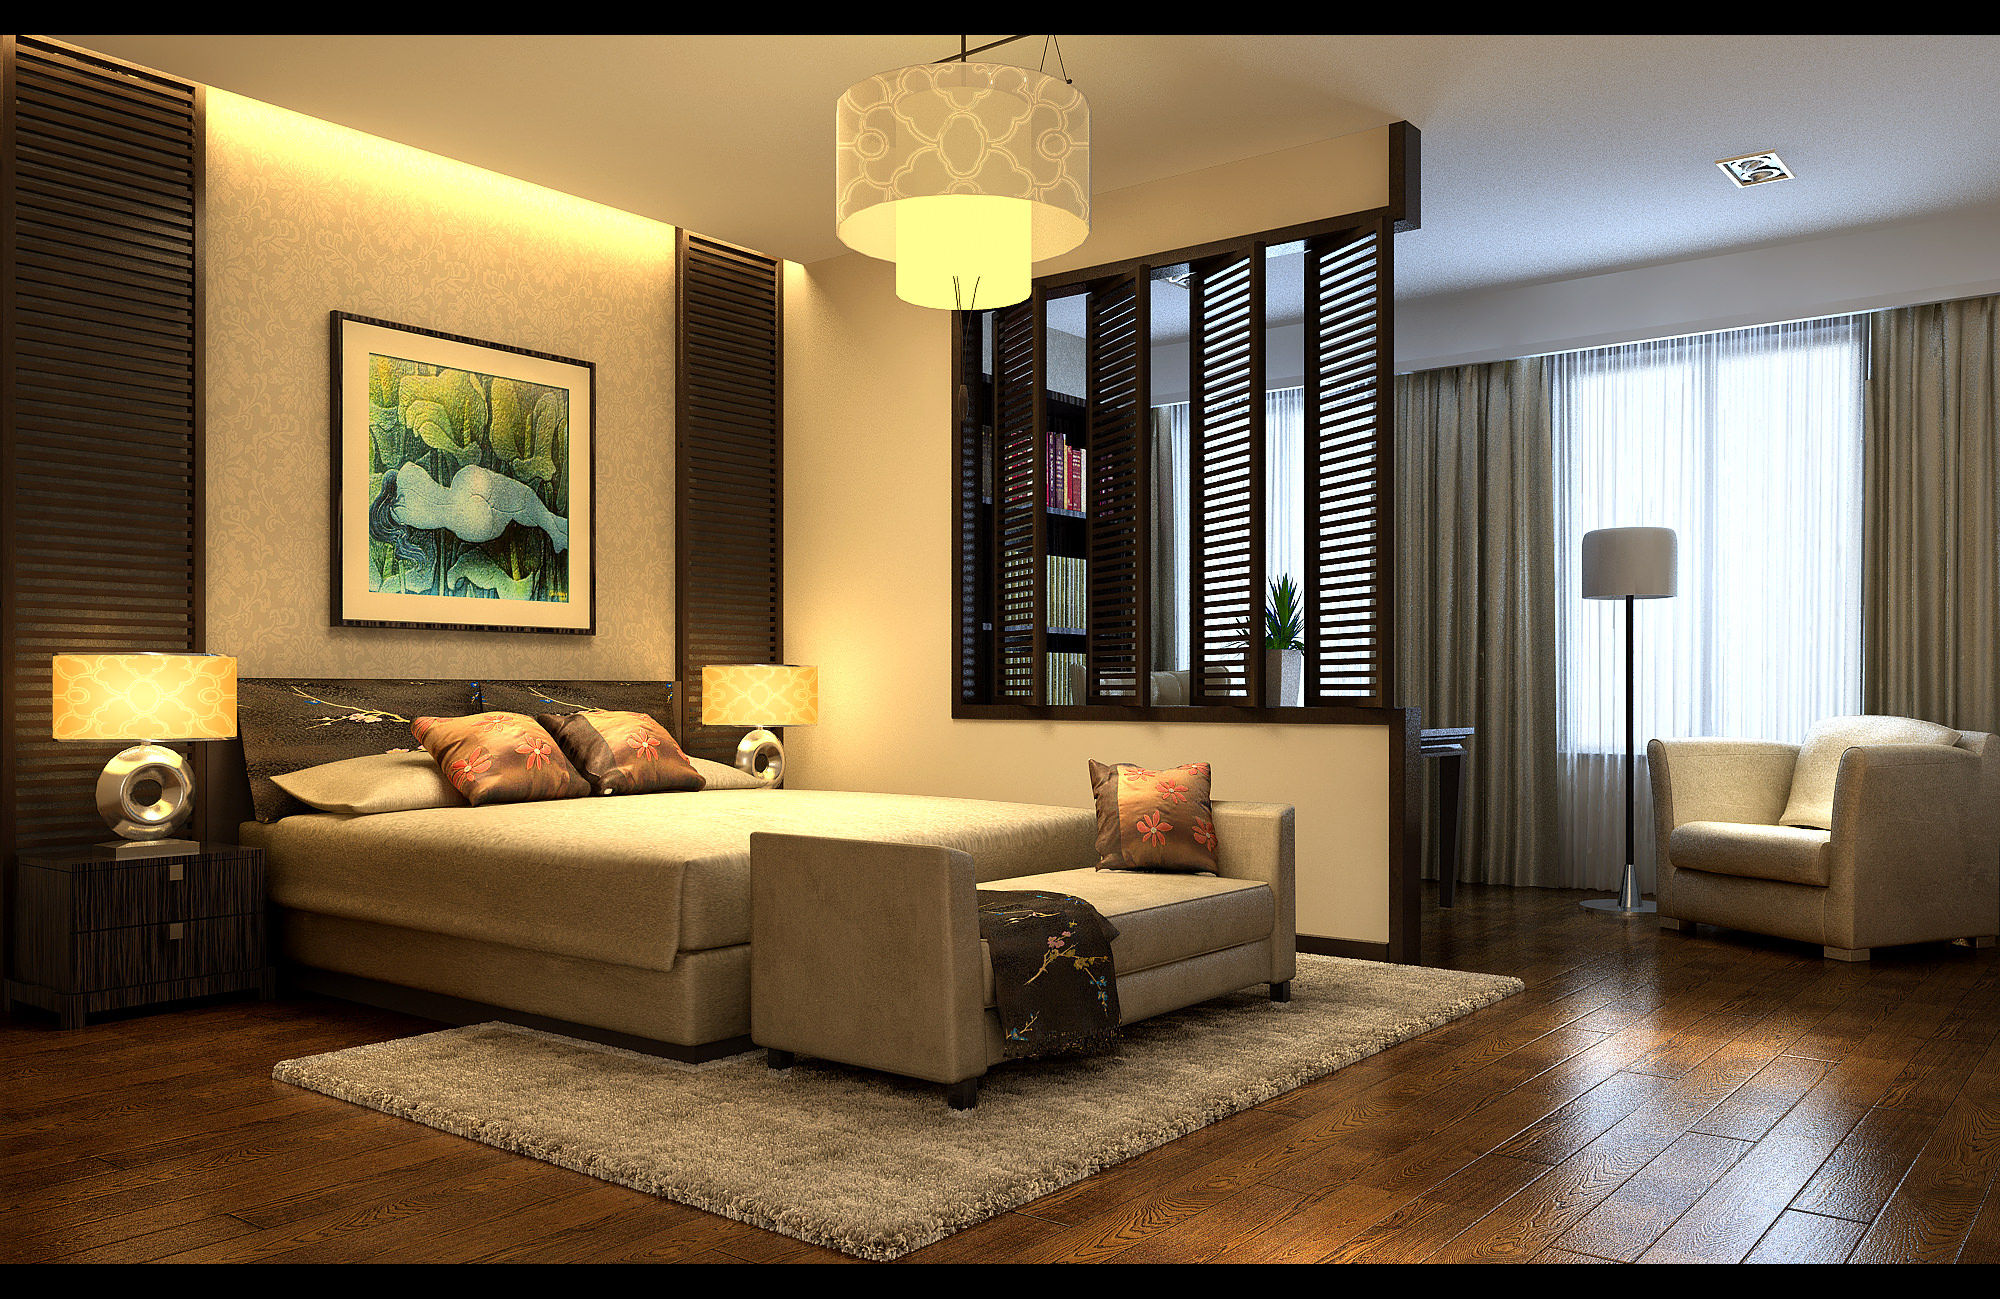 Collection modern bedroom fully furnished 3d model for Bedroom designs 3d model